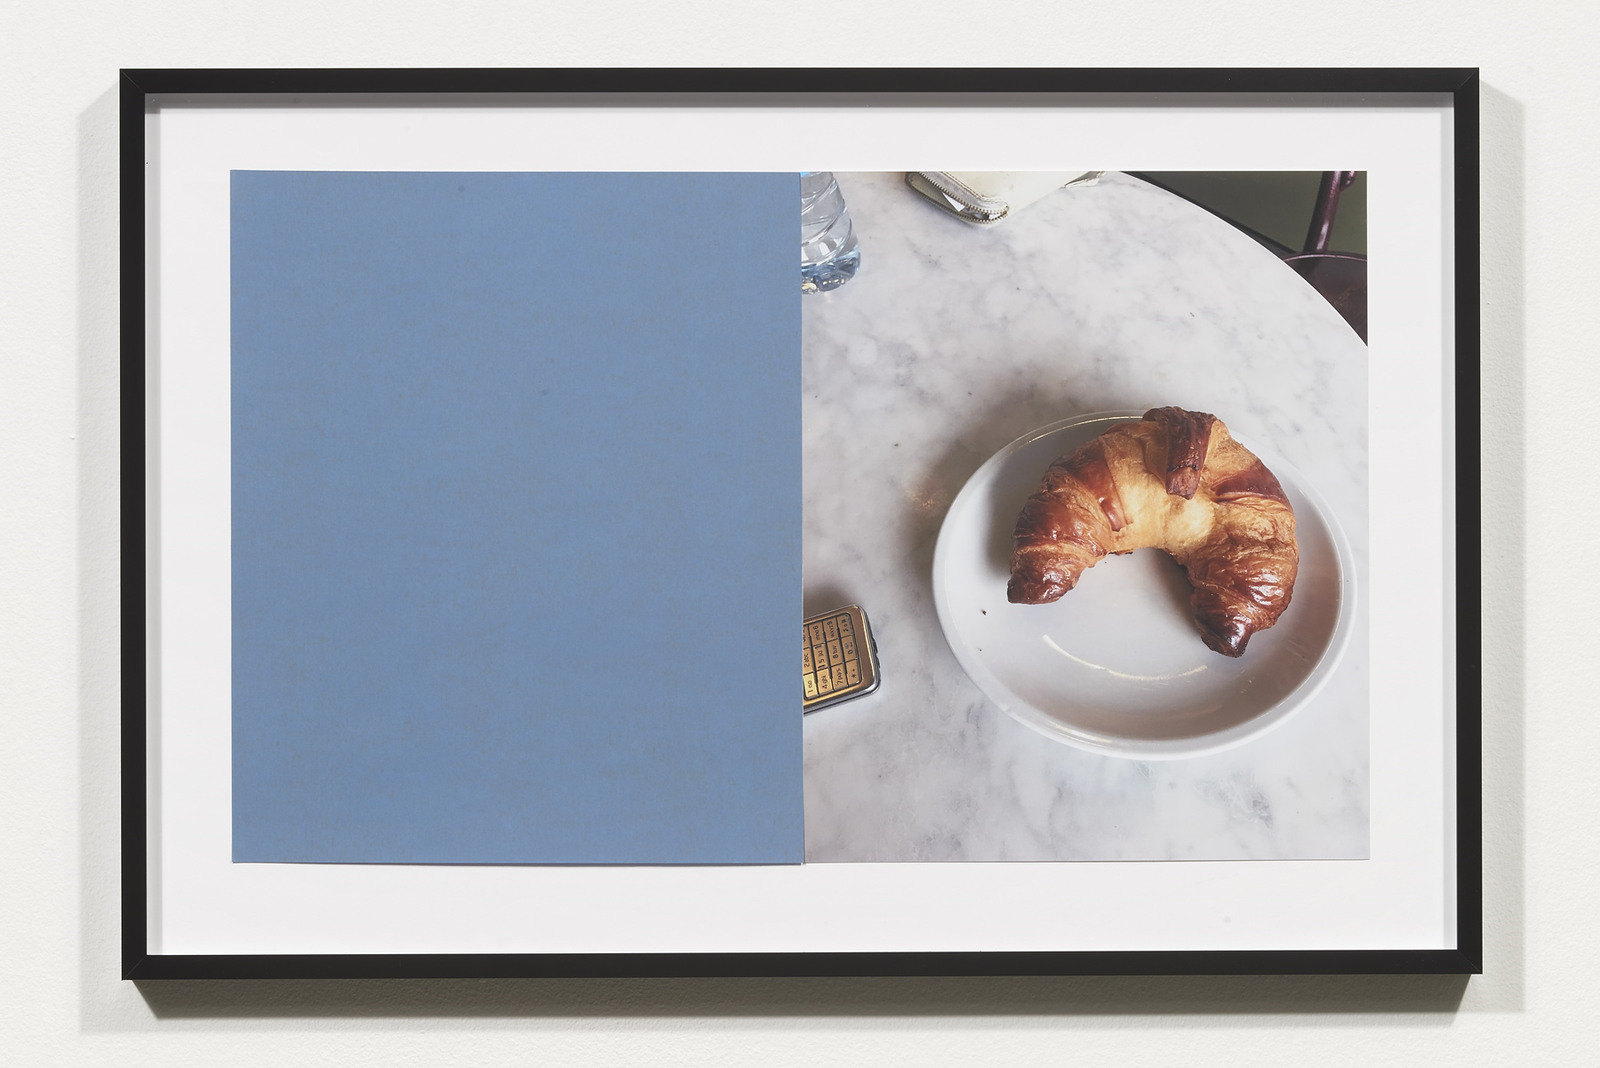 Wermers_Croissants & Architecture #19, 2016_C-print, sandpaper sheet, framed_14 3_8 x 21 1_2 in_NW00060PG